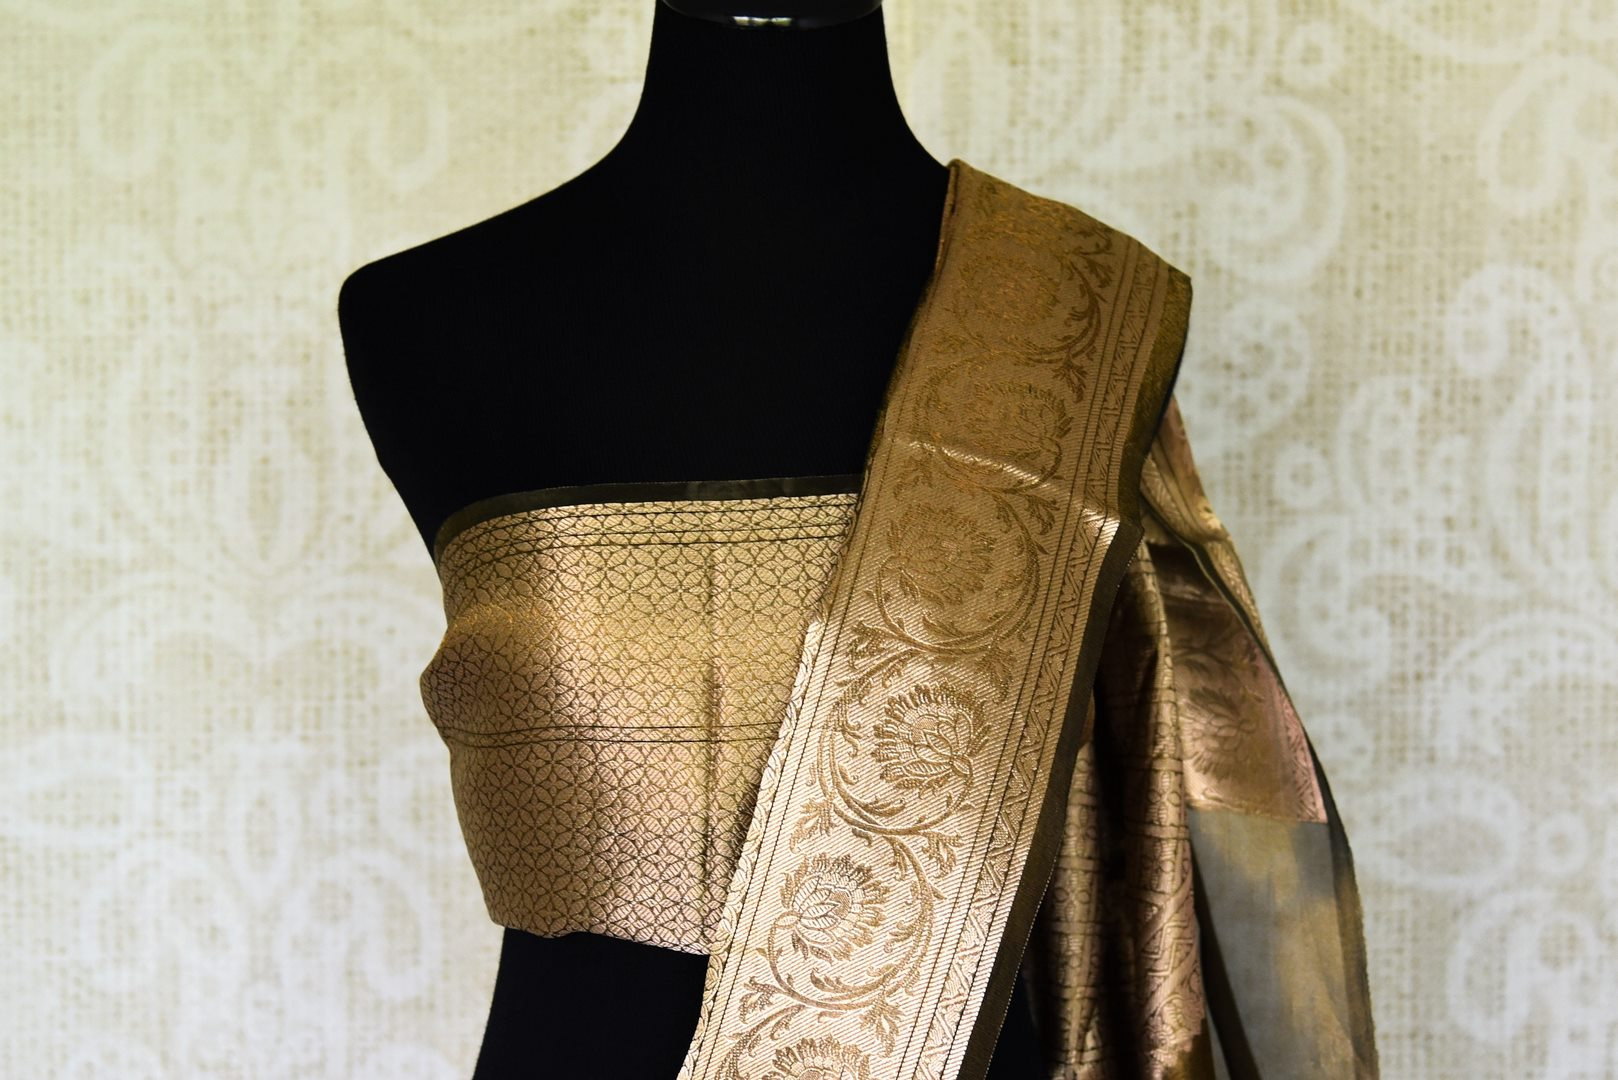 Shop golden green printed tissue linen sari online in USA with golden border. Update your saree wardrobe with stunning Indian handwoven sarees from Pure Elegance Indian fashion store in USA. Shop now.-blouse pallu